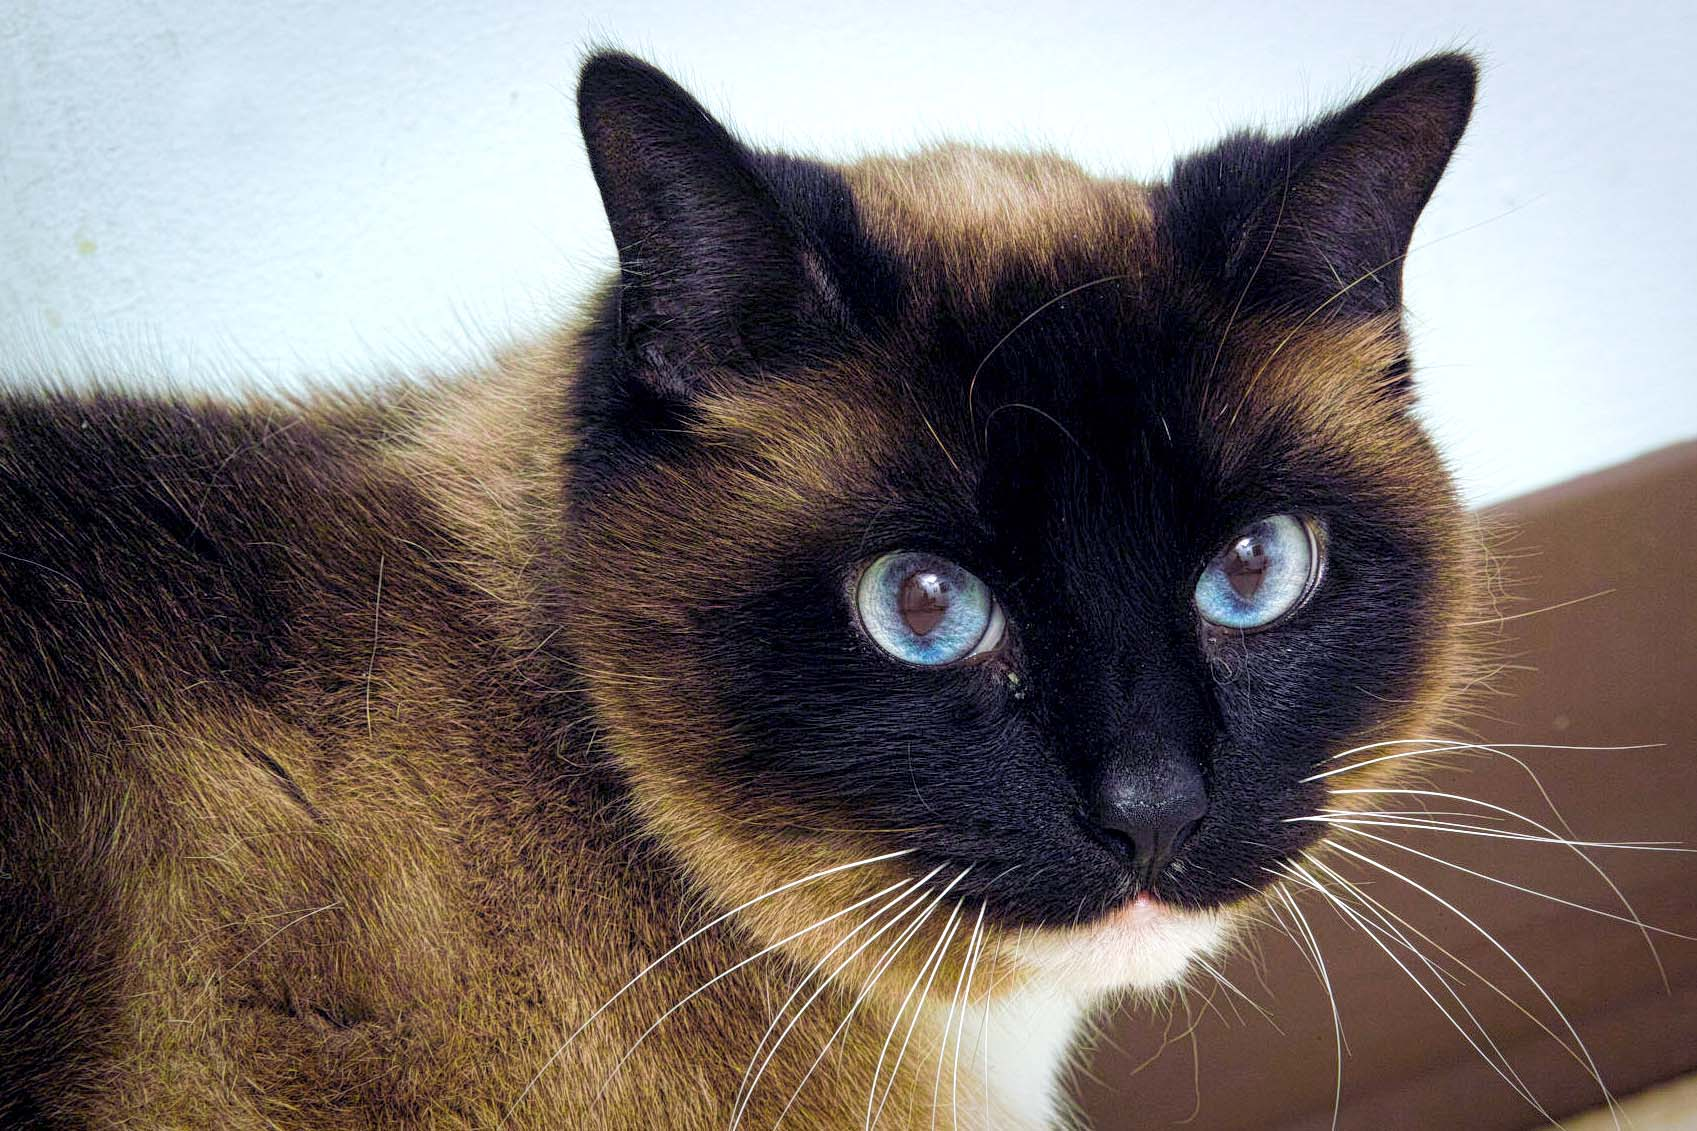 Mickey is an 8 years old domestic shorthair with Siamese markings. He came to HAWS because his owner was going away to college.Mickey likes spending time looking out the window and lounging around the house. If you want a cat, he would be handsome company. Some might say he is purrrfect!